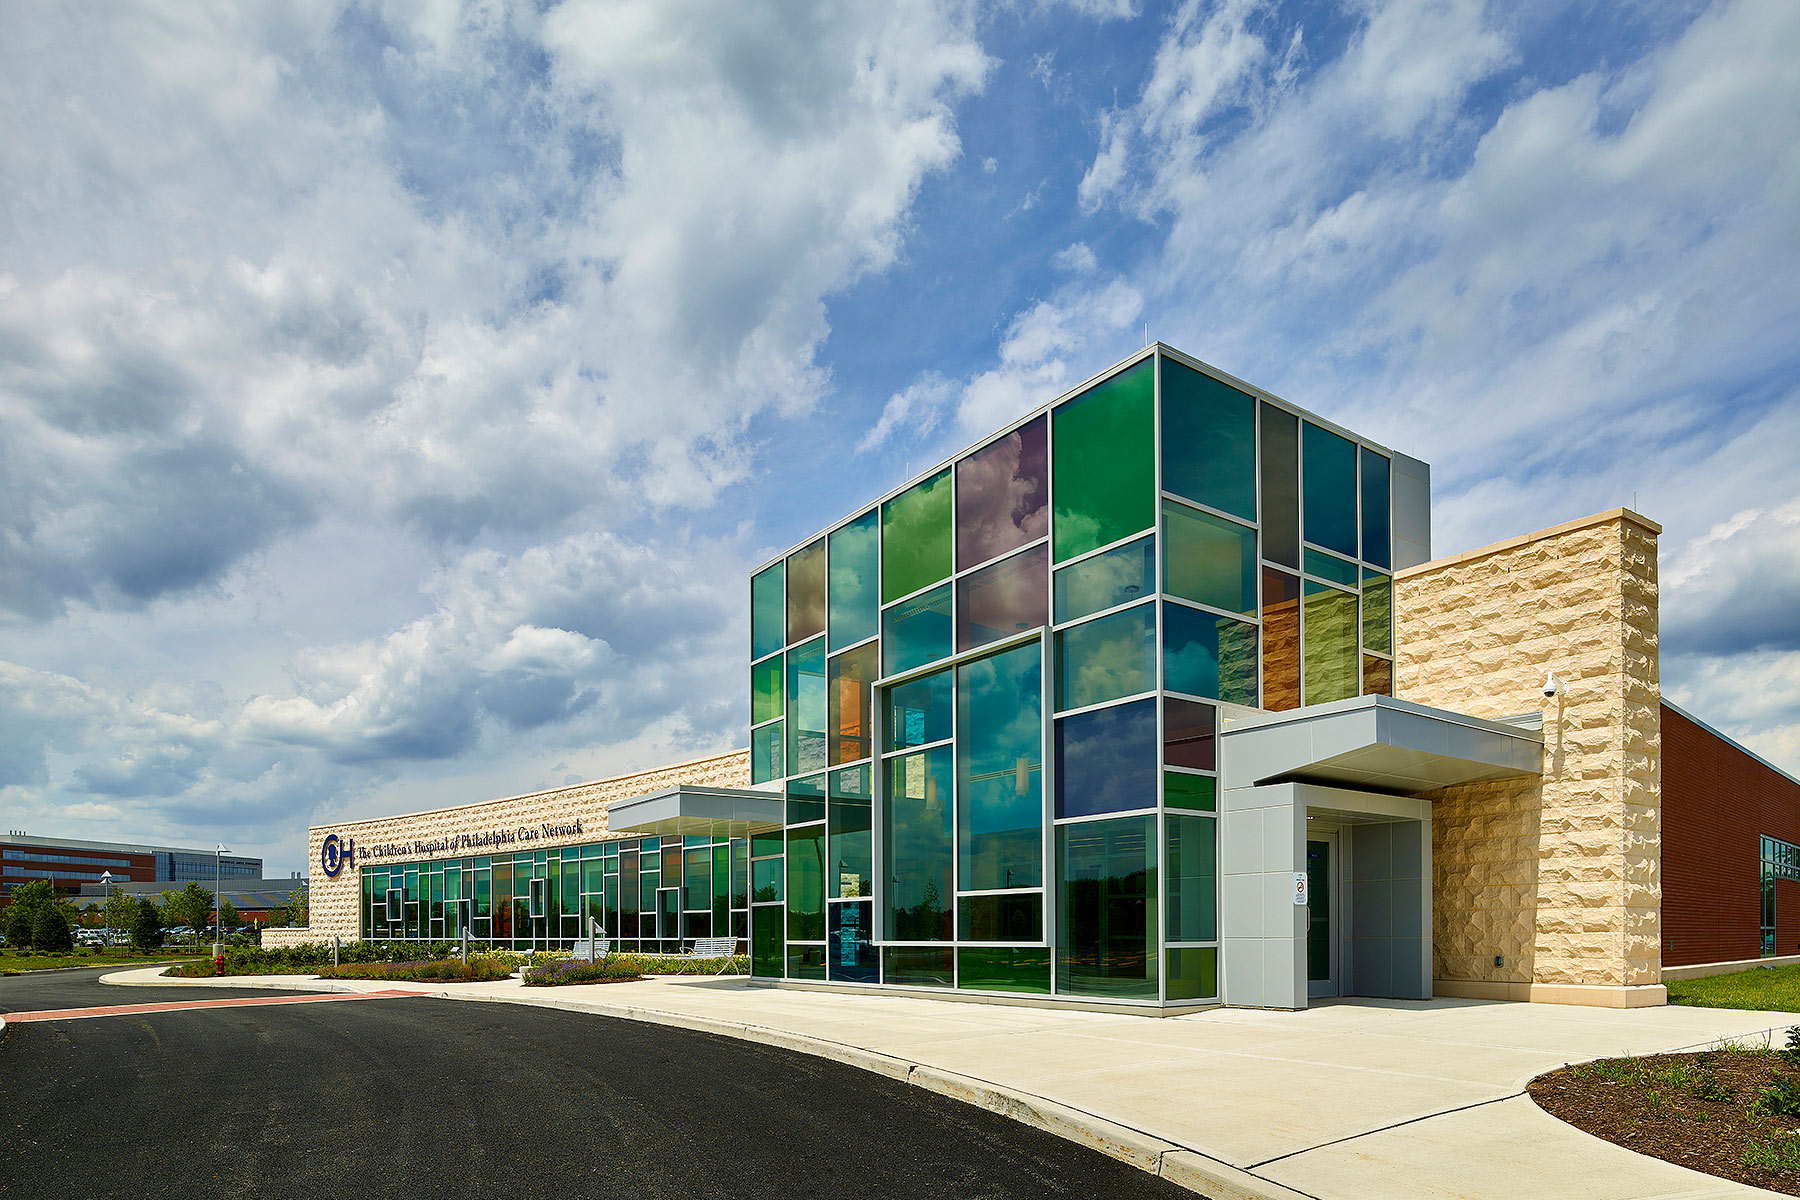 Children's Hospital of Philadelphia Stantec Plainsboro, NJ